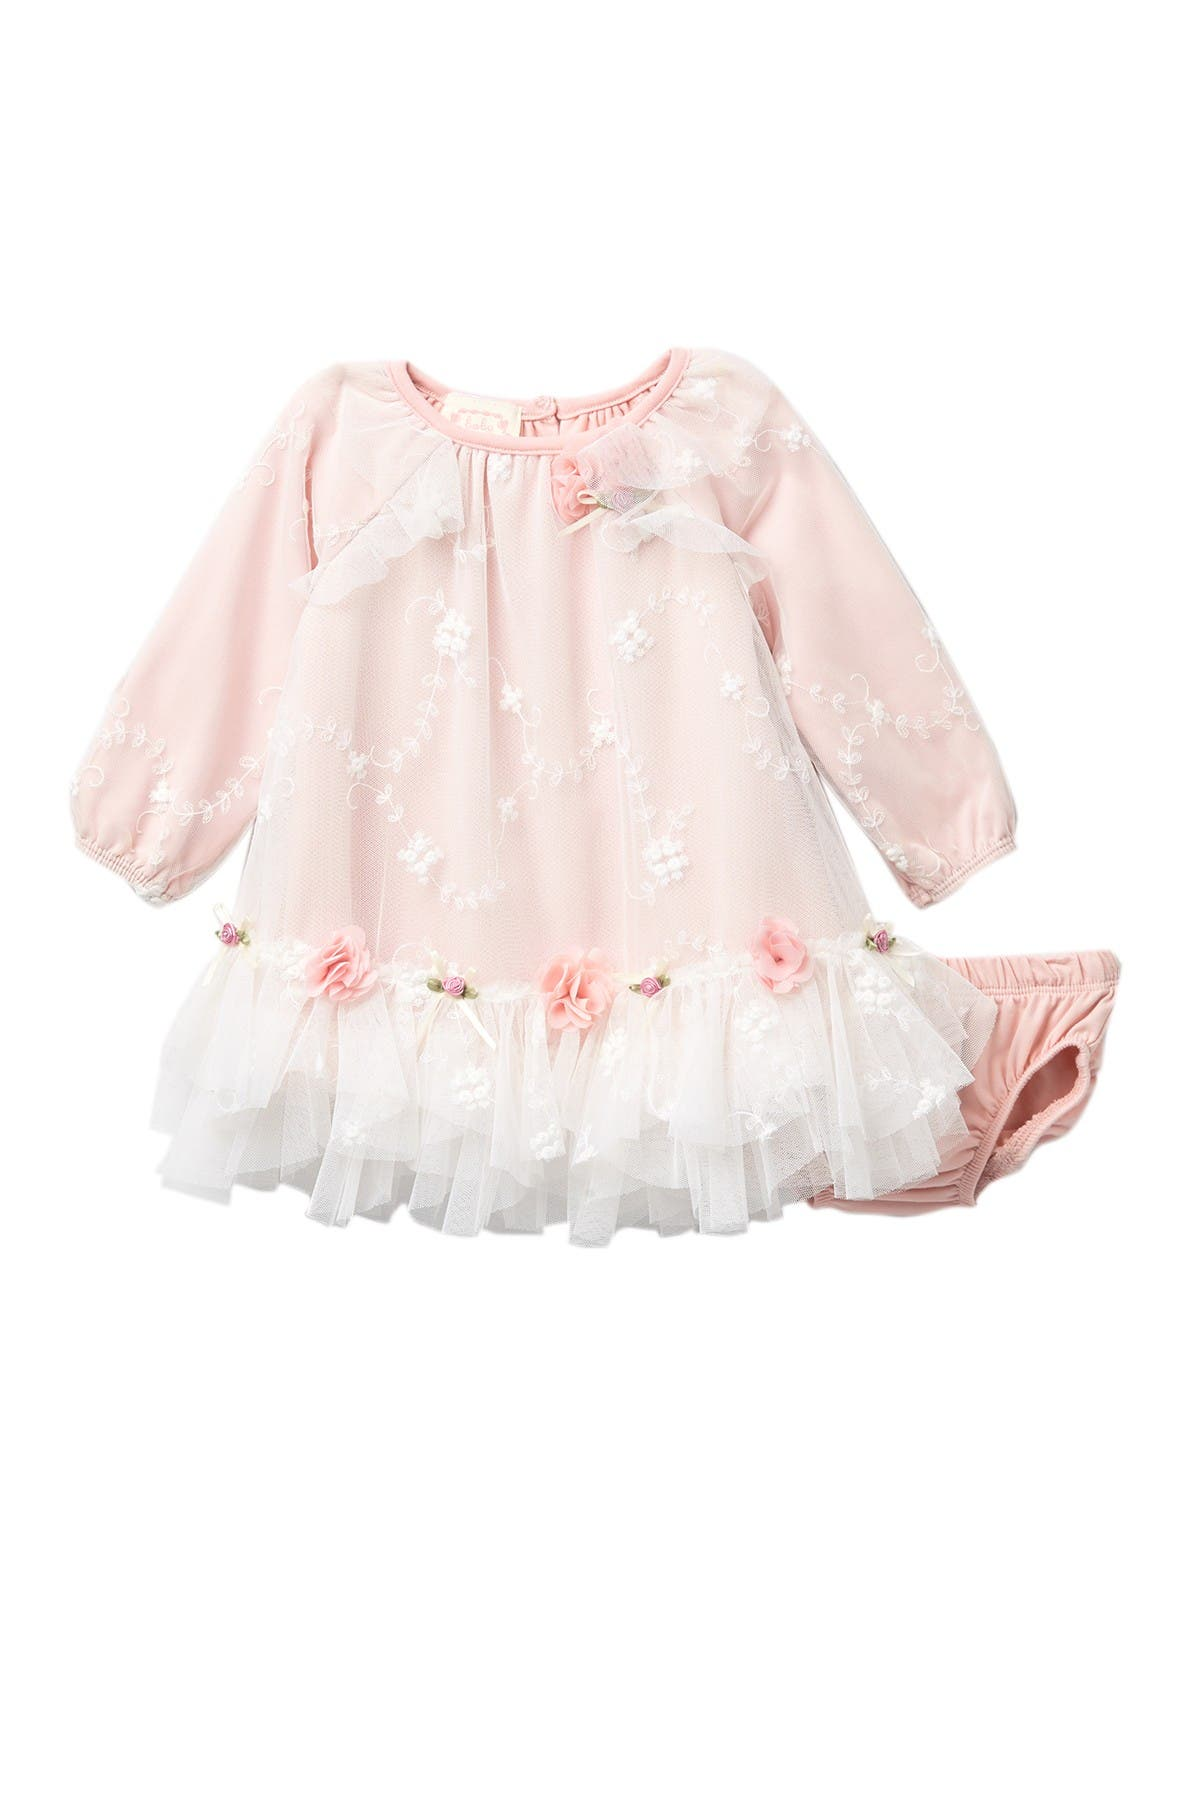 Image of BISCOTTI Embroidered Mesh Dress Set (Baby Girls)